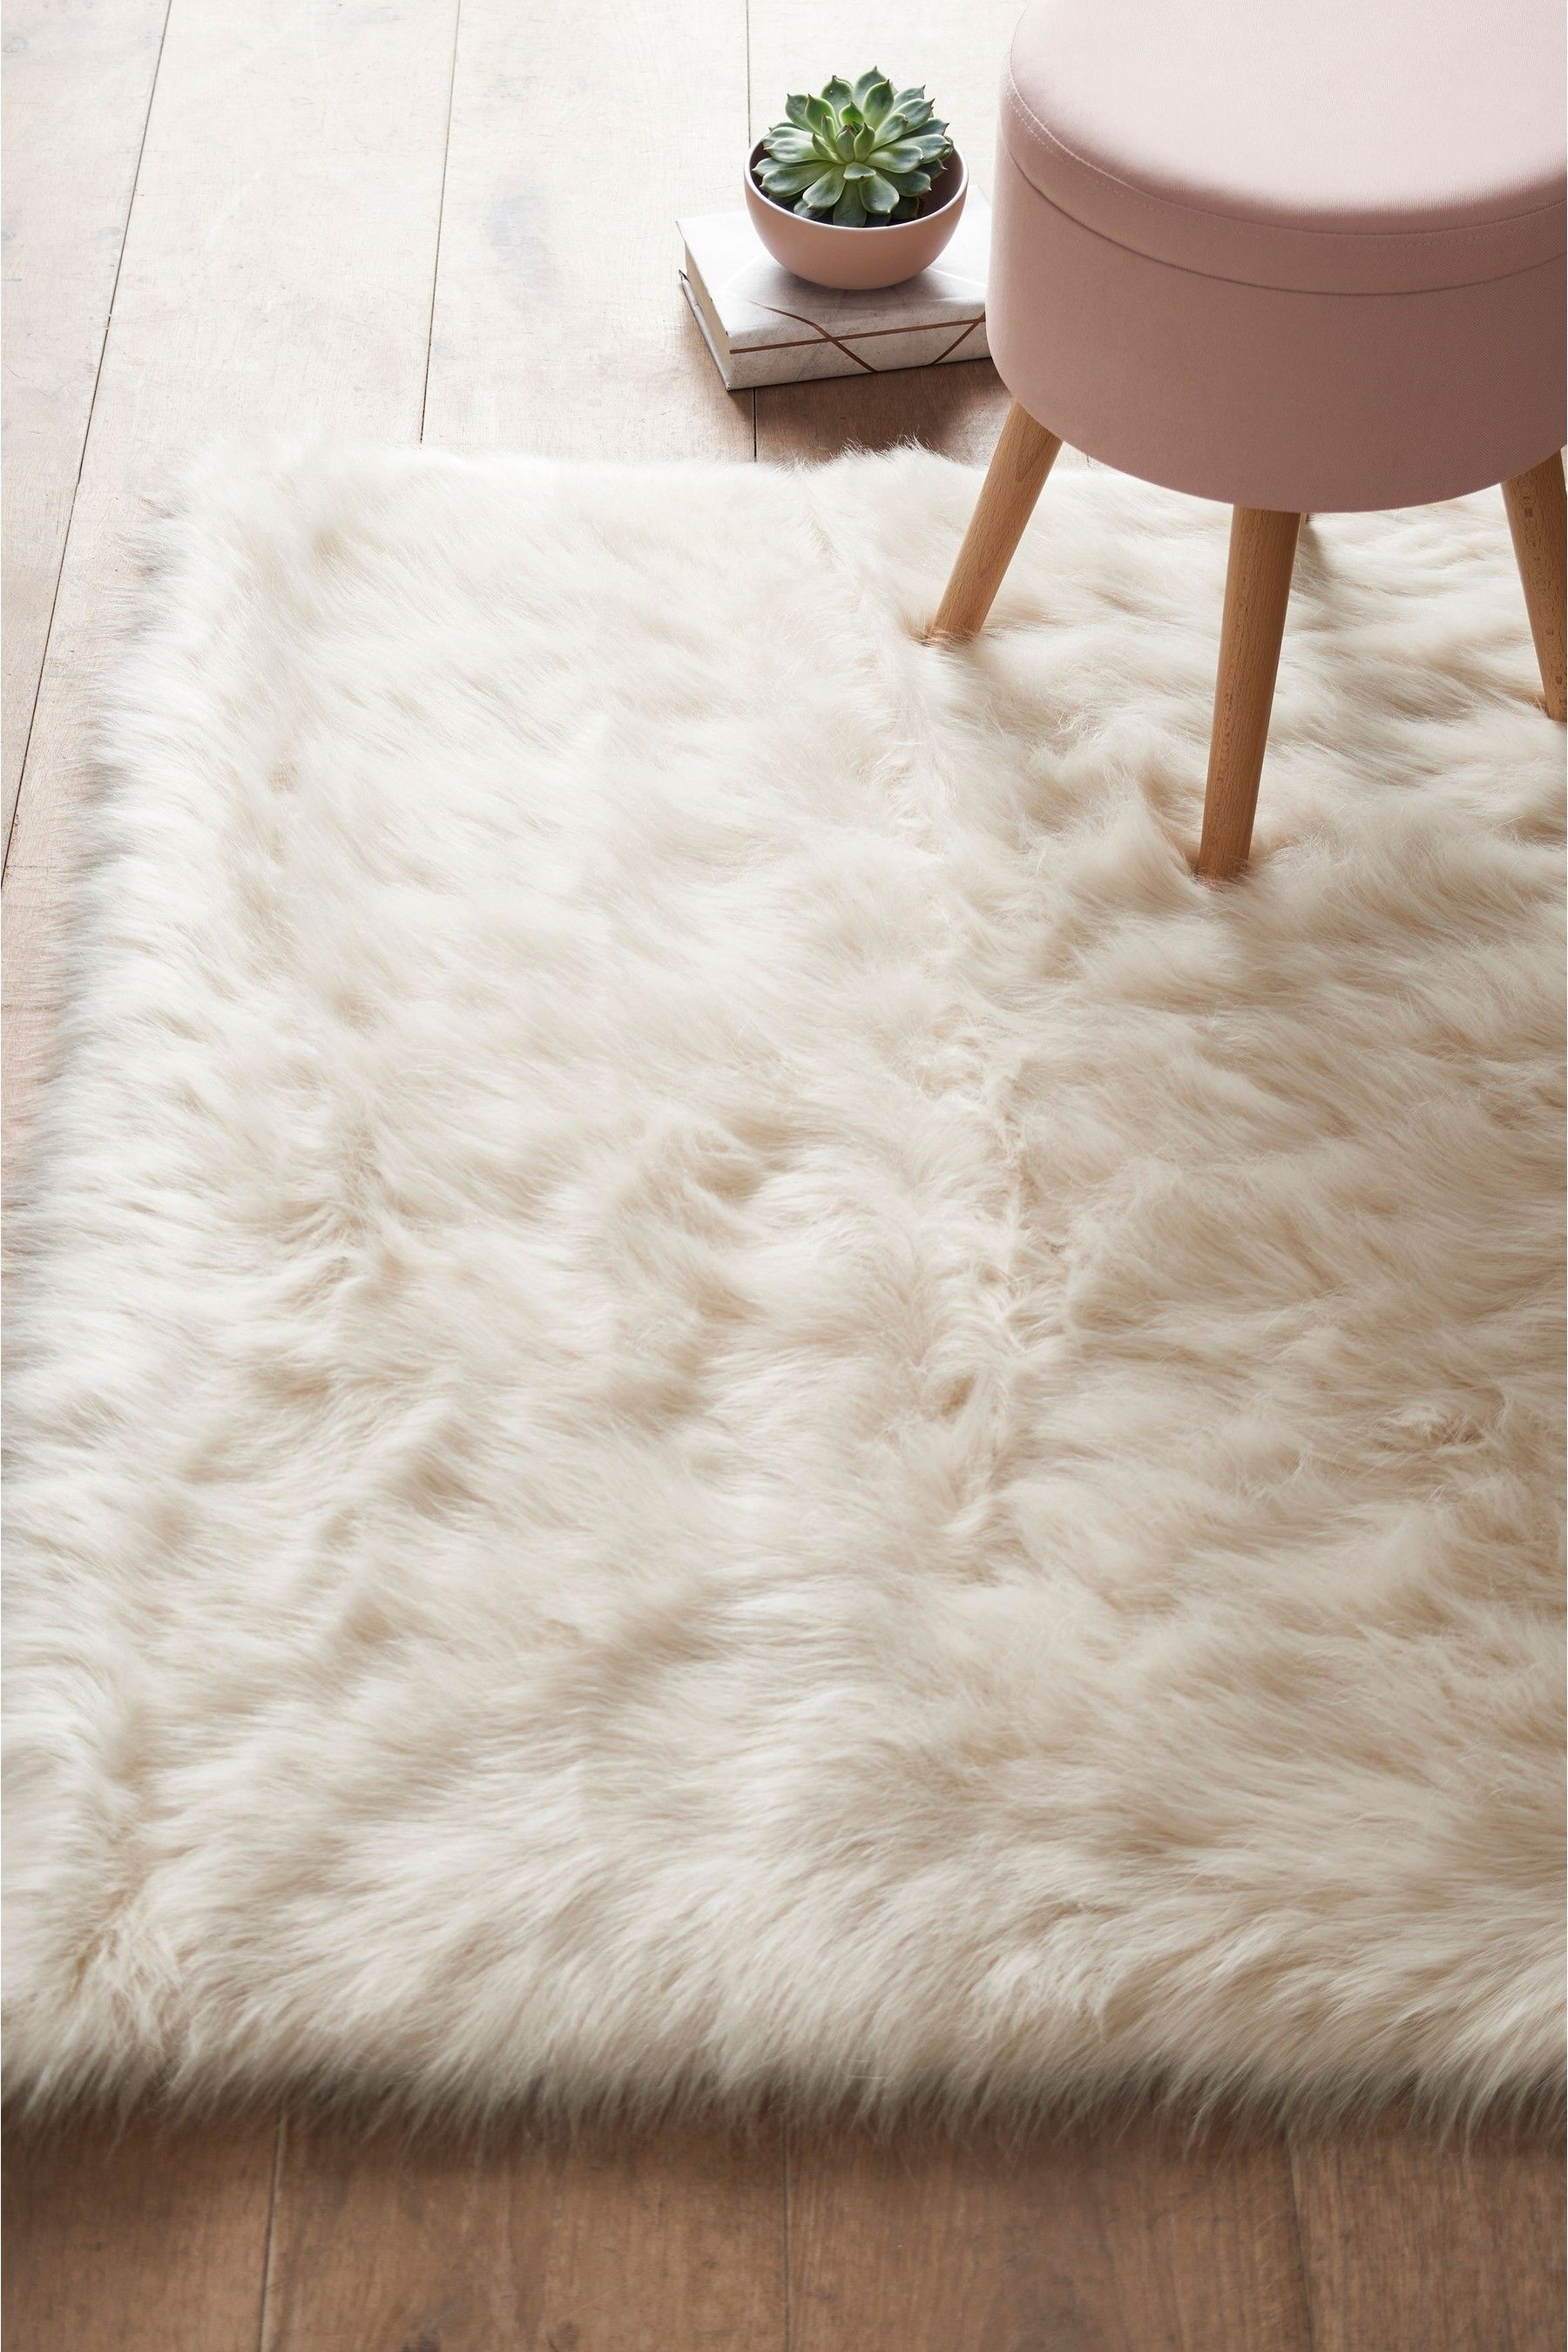 Next Faux Sheepskin Rug Cream Bedroom Rug Fur Rug Fur Rug Bedroom